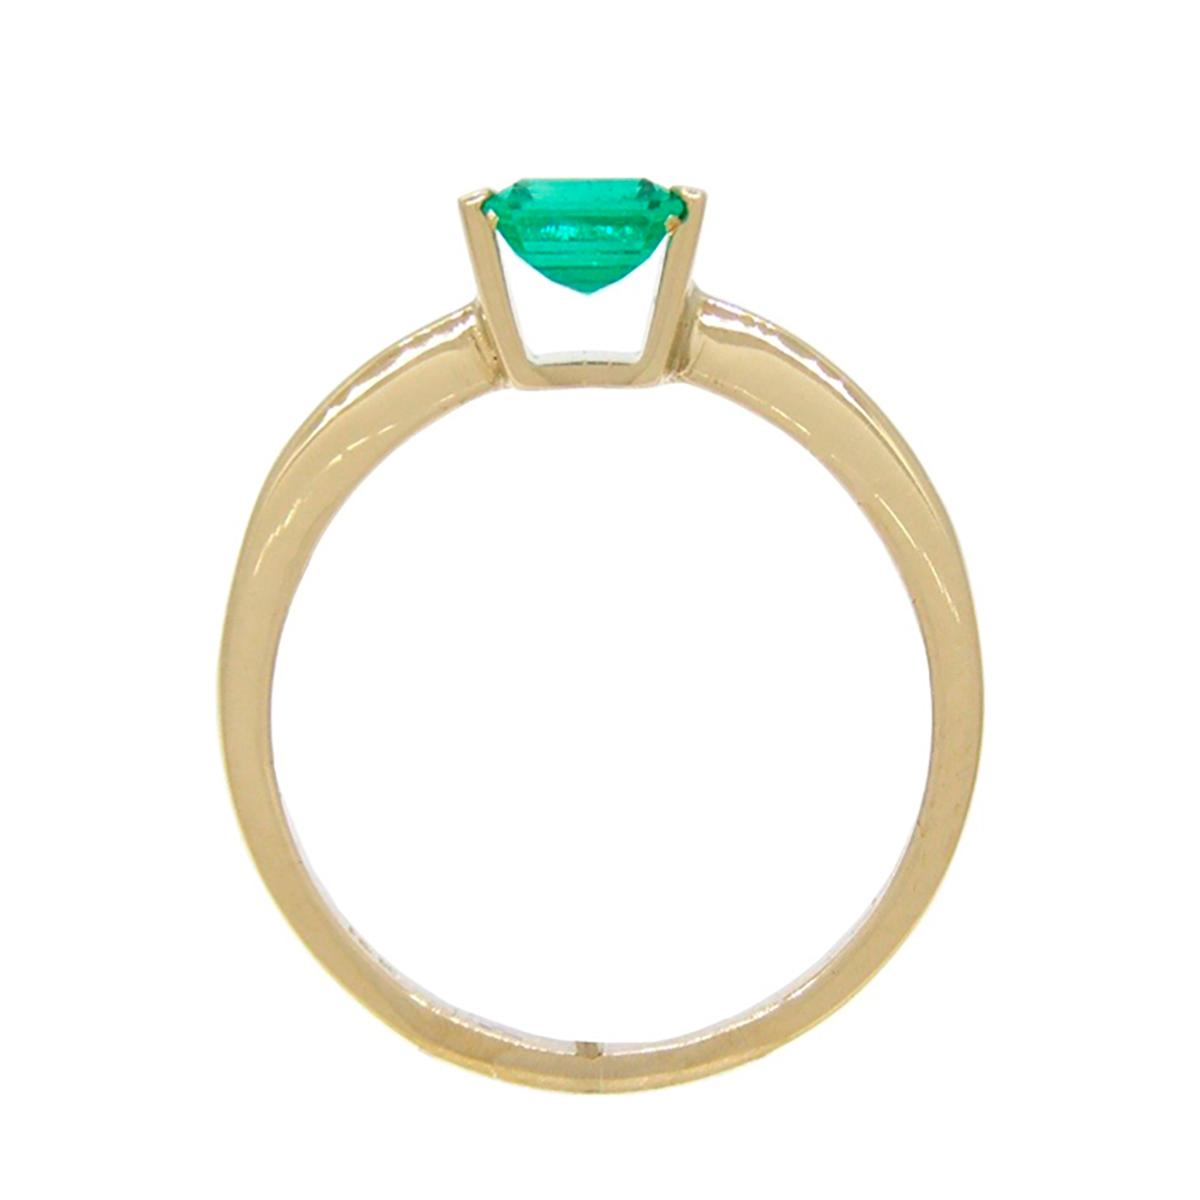 emerald-cut-emerald-solitaire-ring-in-18k-yellow-gold-tension-setting-ring-style